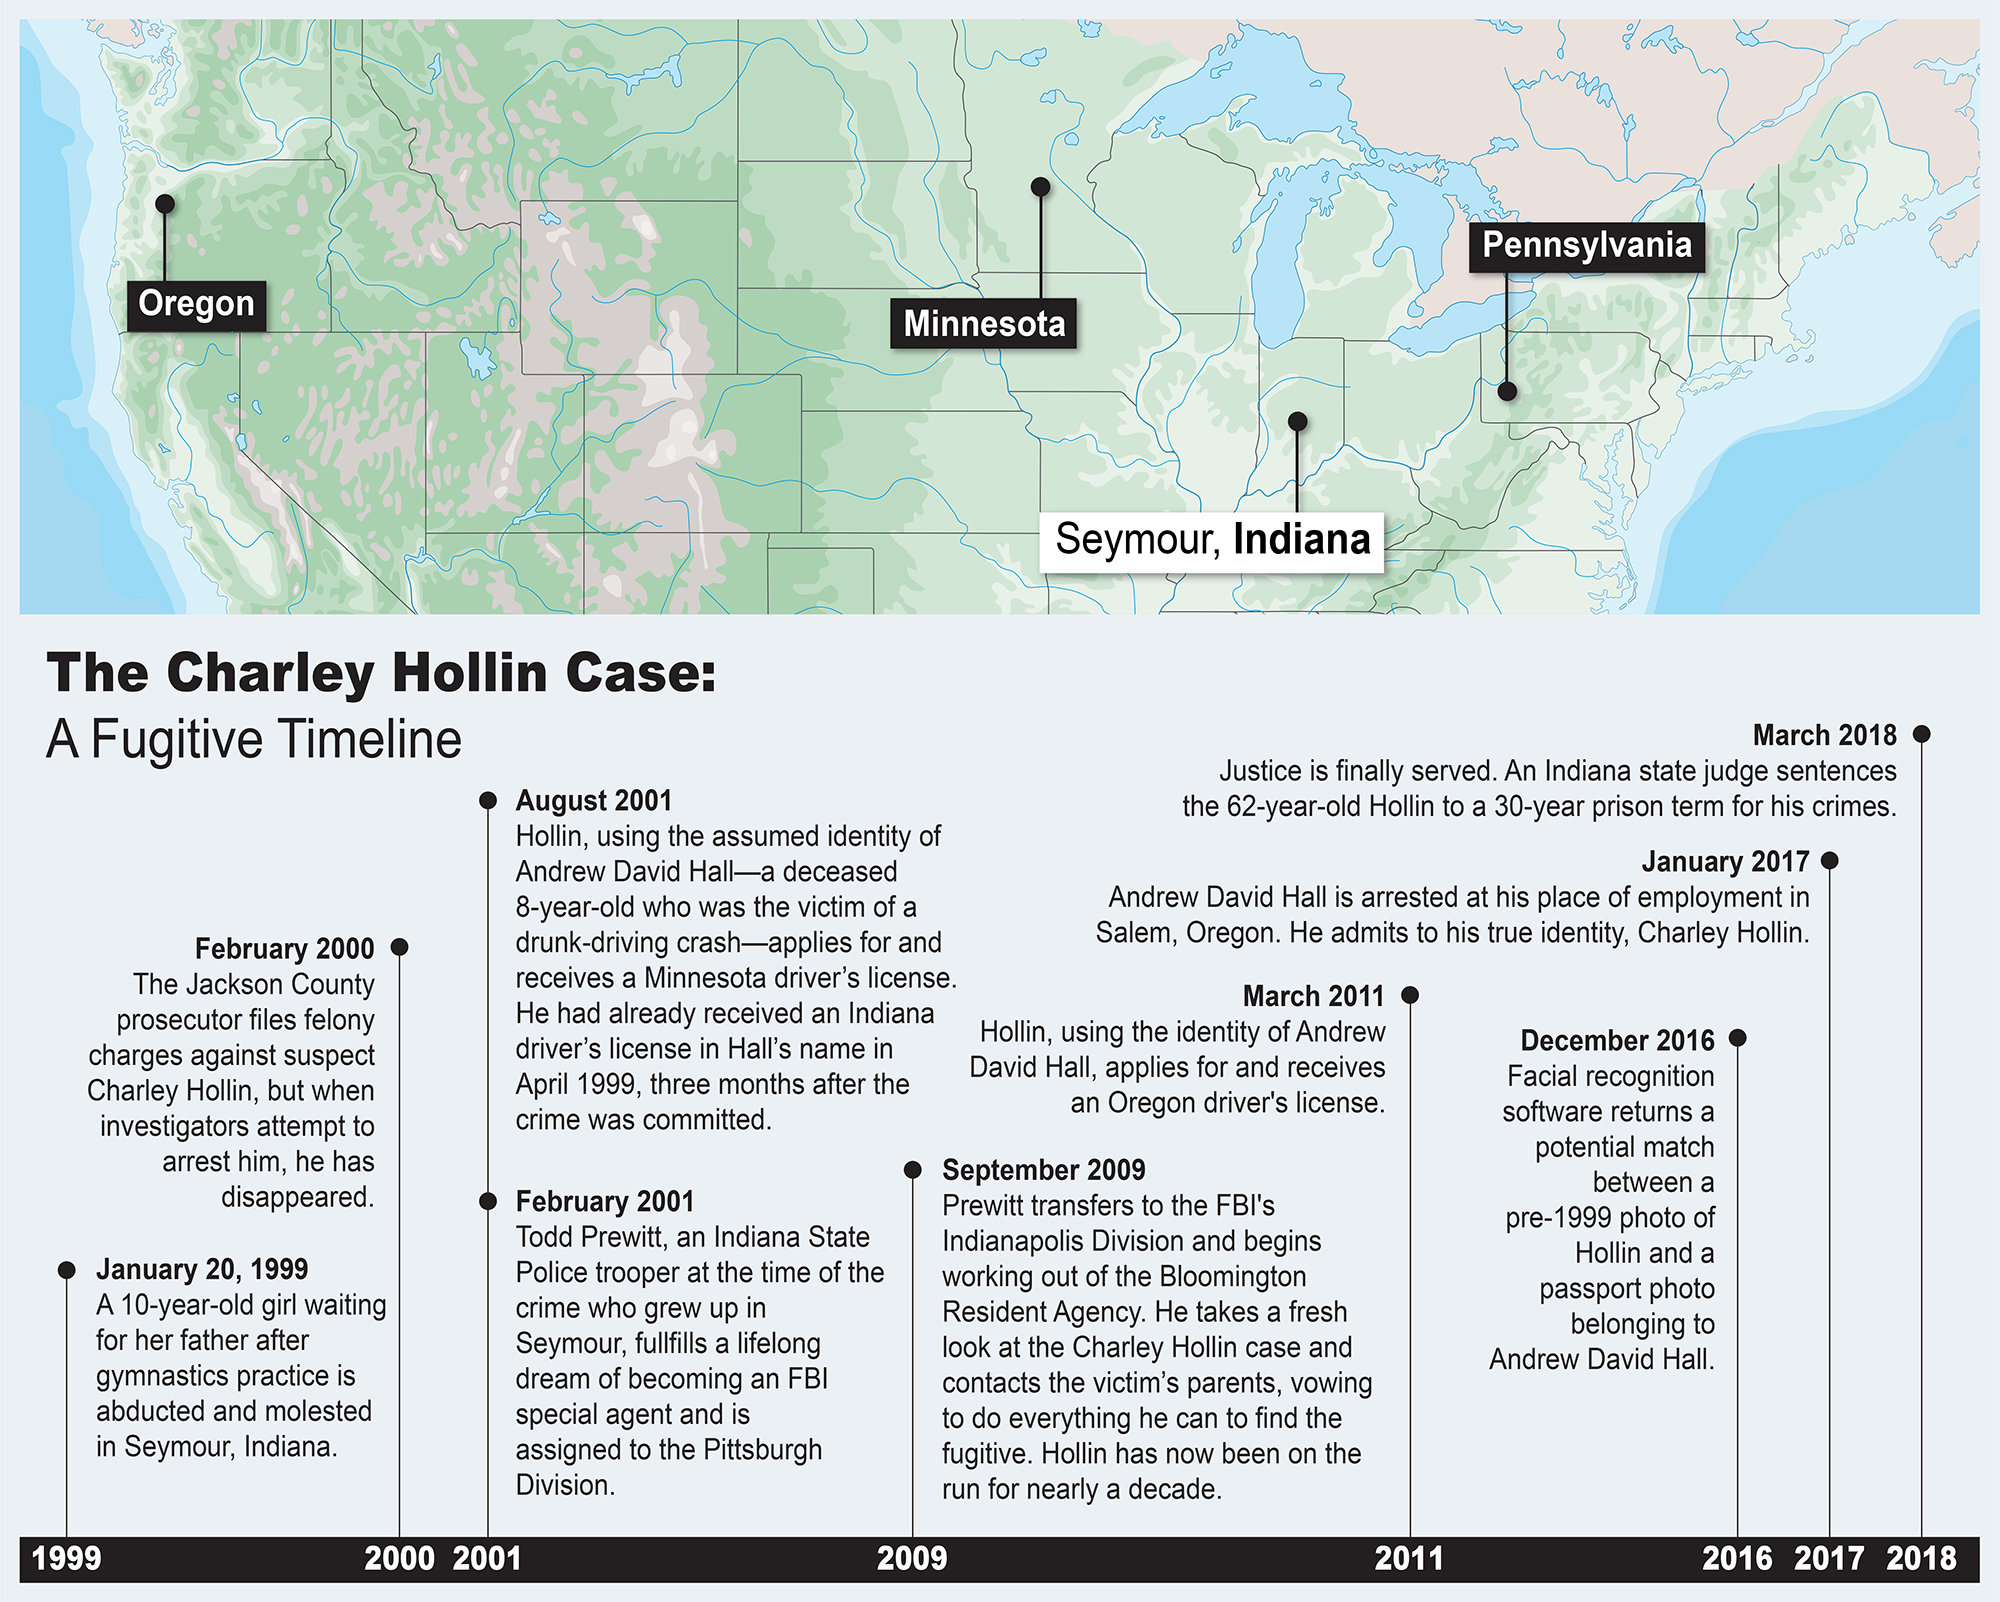 Timeline of events in Charley Hollin case (fugitive in 1999 molestation case in Seymour, Indiana), with map showing relevant locations.